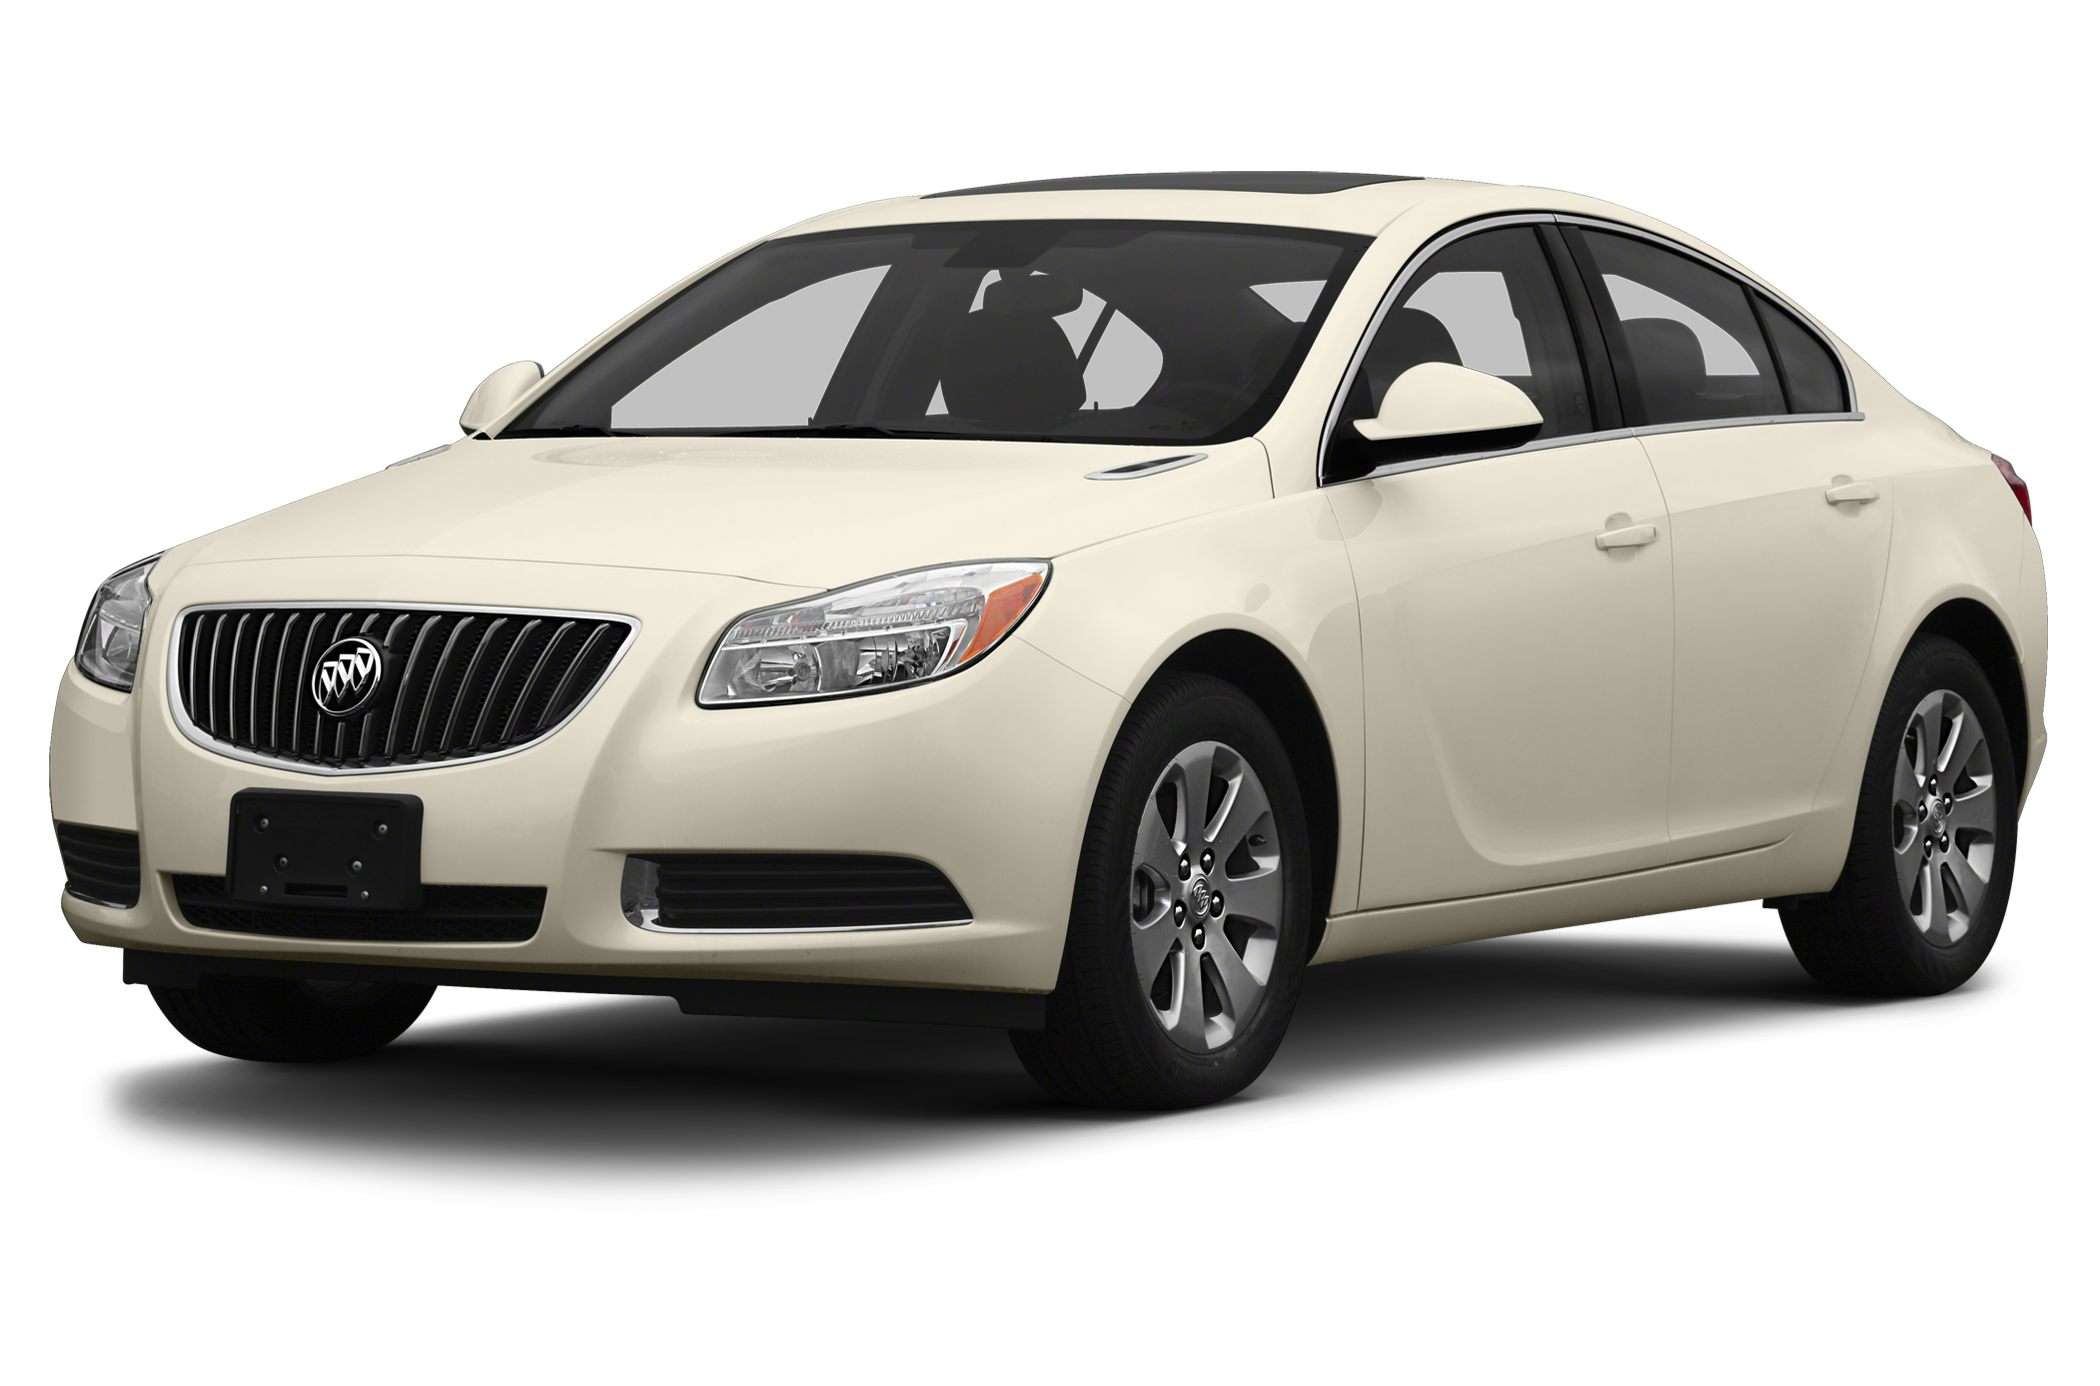 2013 Buick Regal Premium 1 ITS OUR 50TH ANNIVERSARY HERE AT MARTYS AND TO CELEBRATE WERE OFFERIN